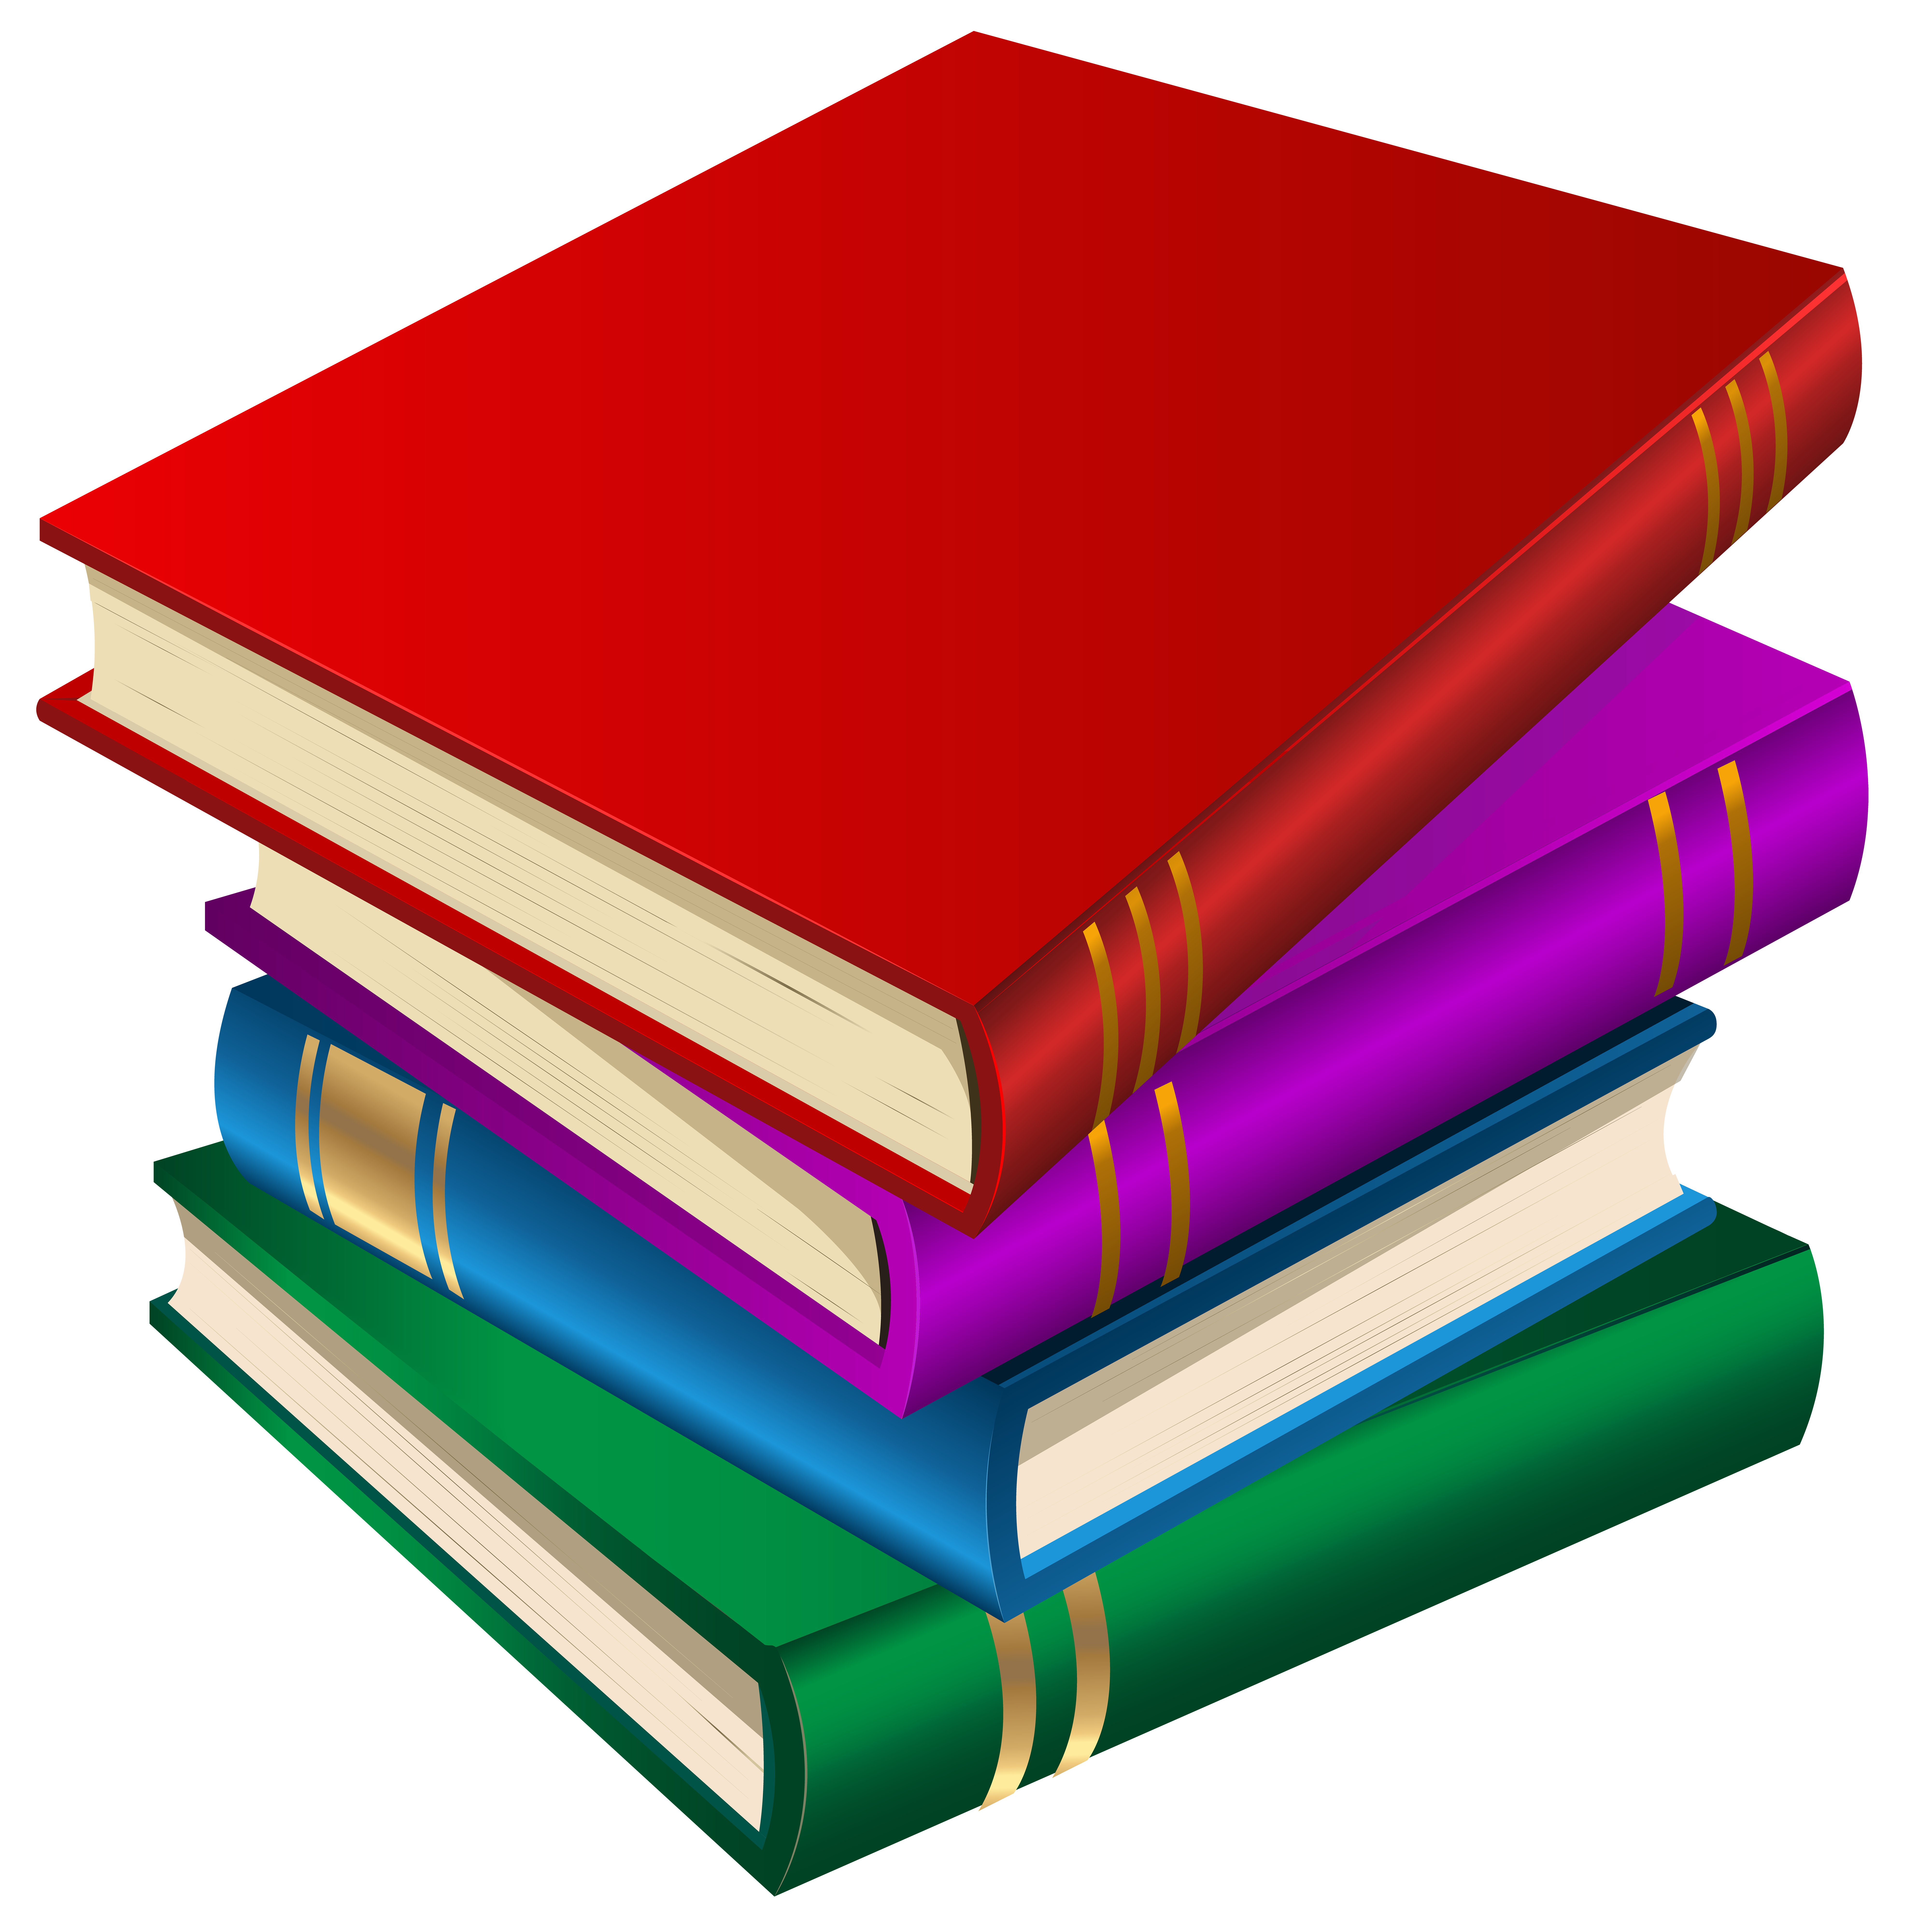 svg transparent library Png image gallery yopriceville. Books clipart.